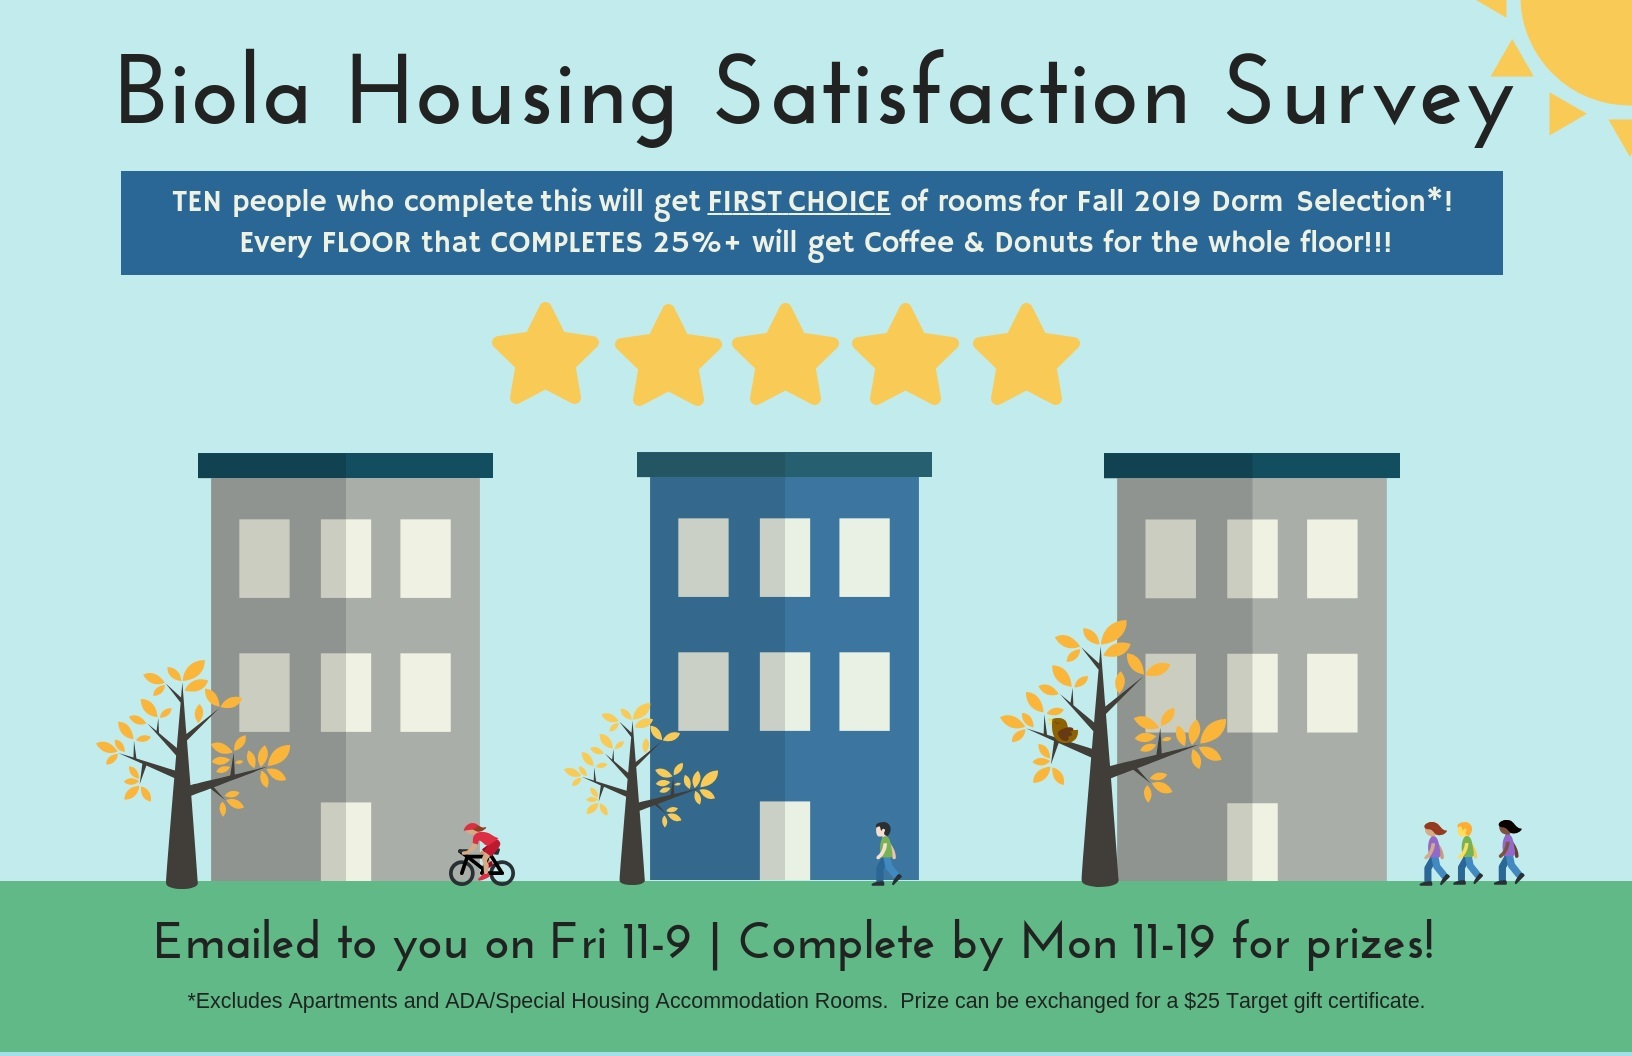 Biola Housing Satisfaction Survey with image of three buildings and prizes of 10 people selected for 1st choice during Fall 2019 Dorm Selection